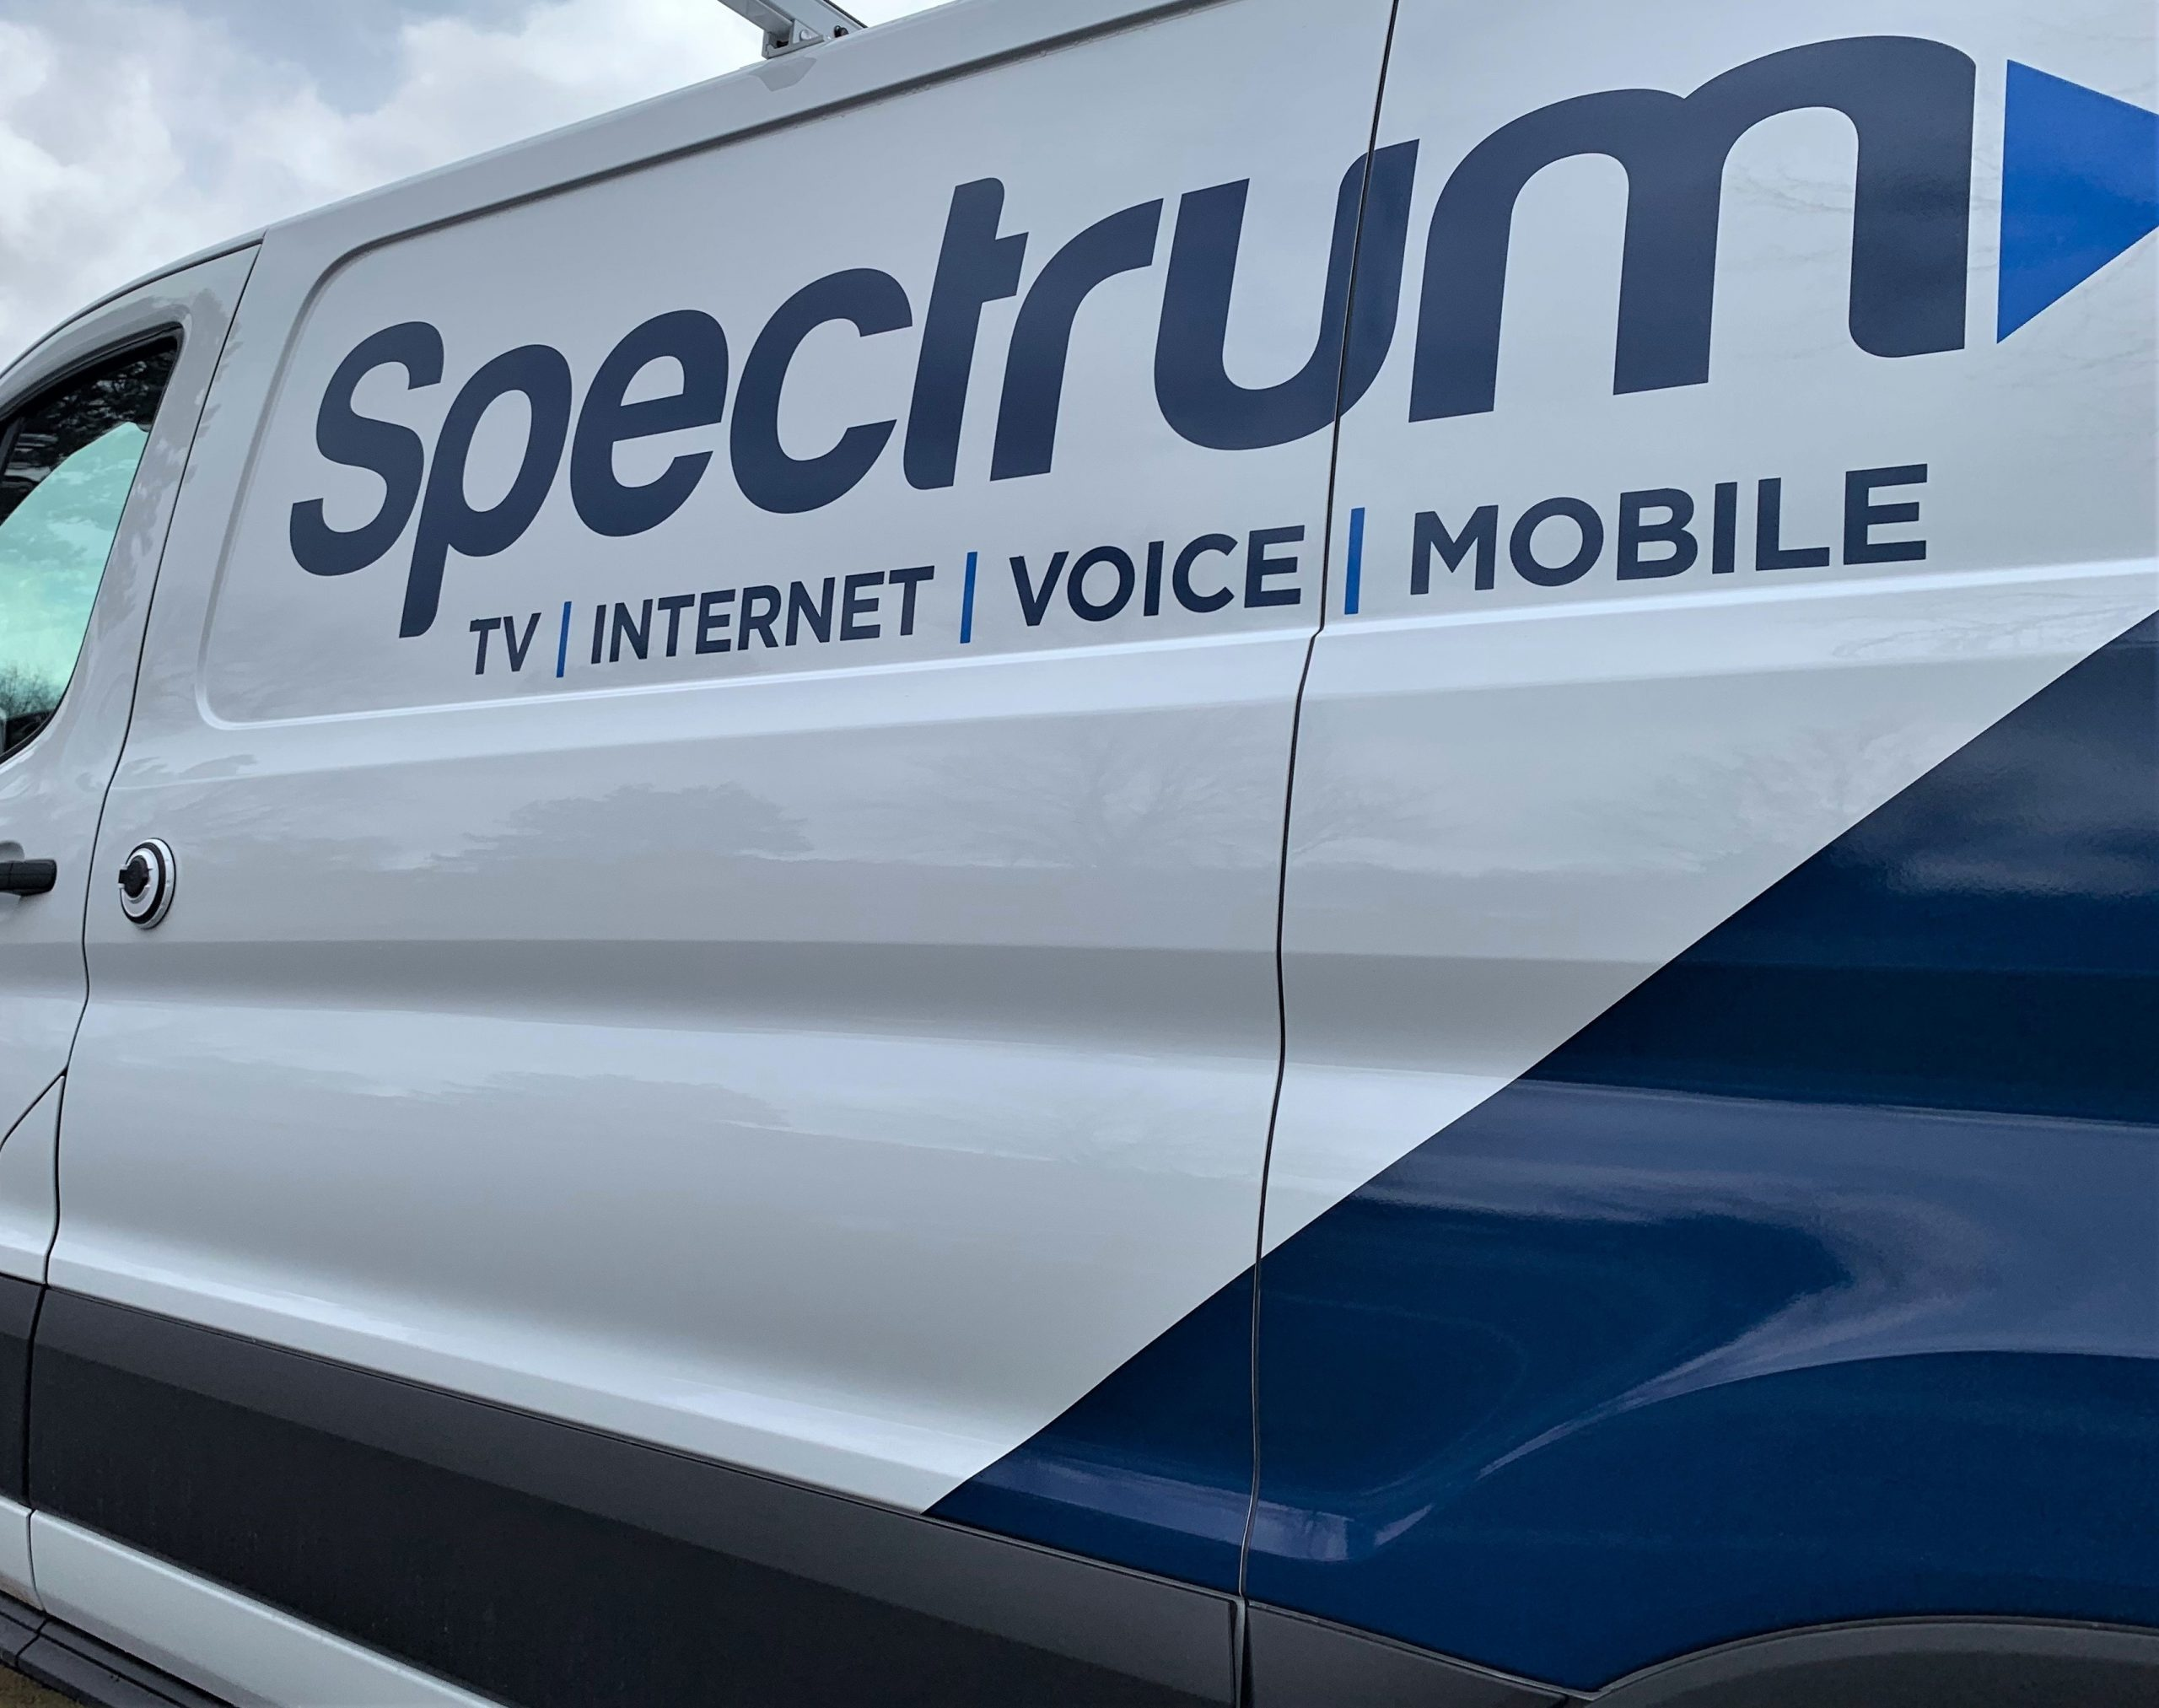 spectrum, ocala post, ocala news, free internet